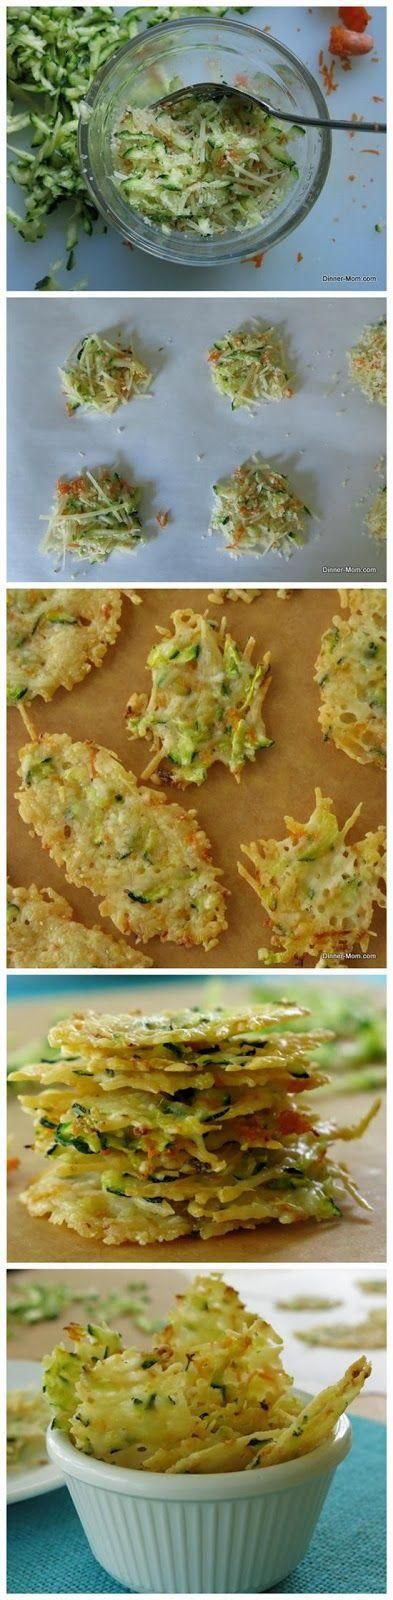 multi Crisps  Carrots bracelet charm Zucchini with Cheese and Laced cross Parmesan  amp    Crisps Parmesan   Zucchini Recipe Cheese